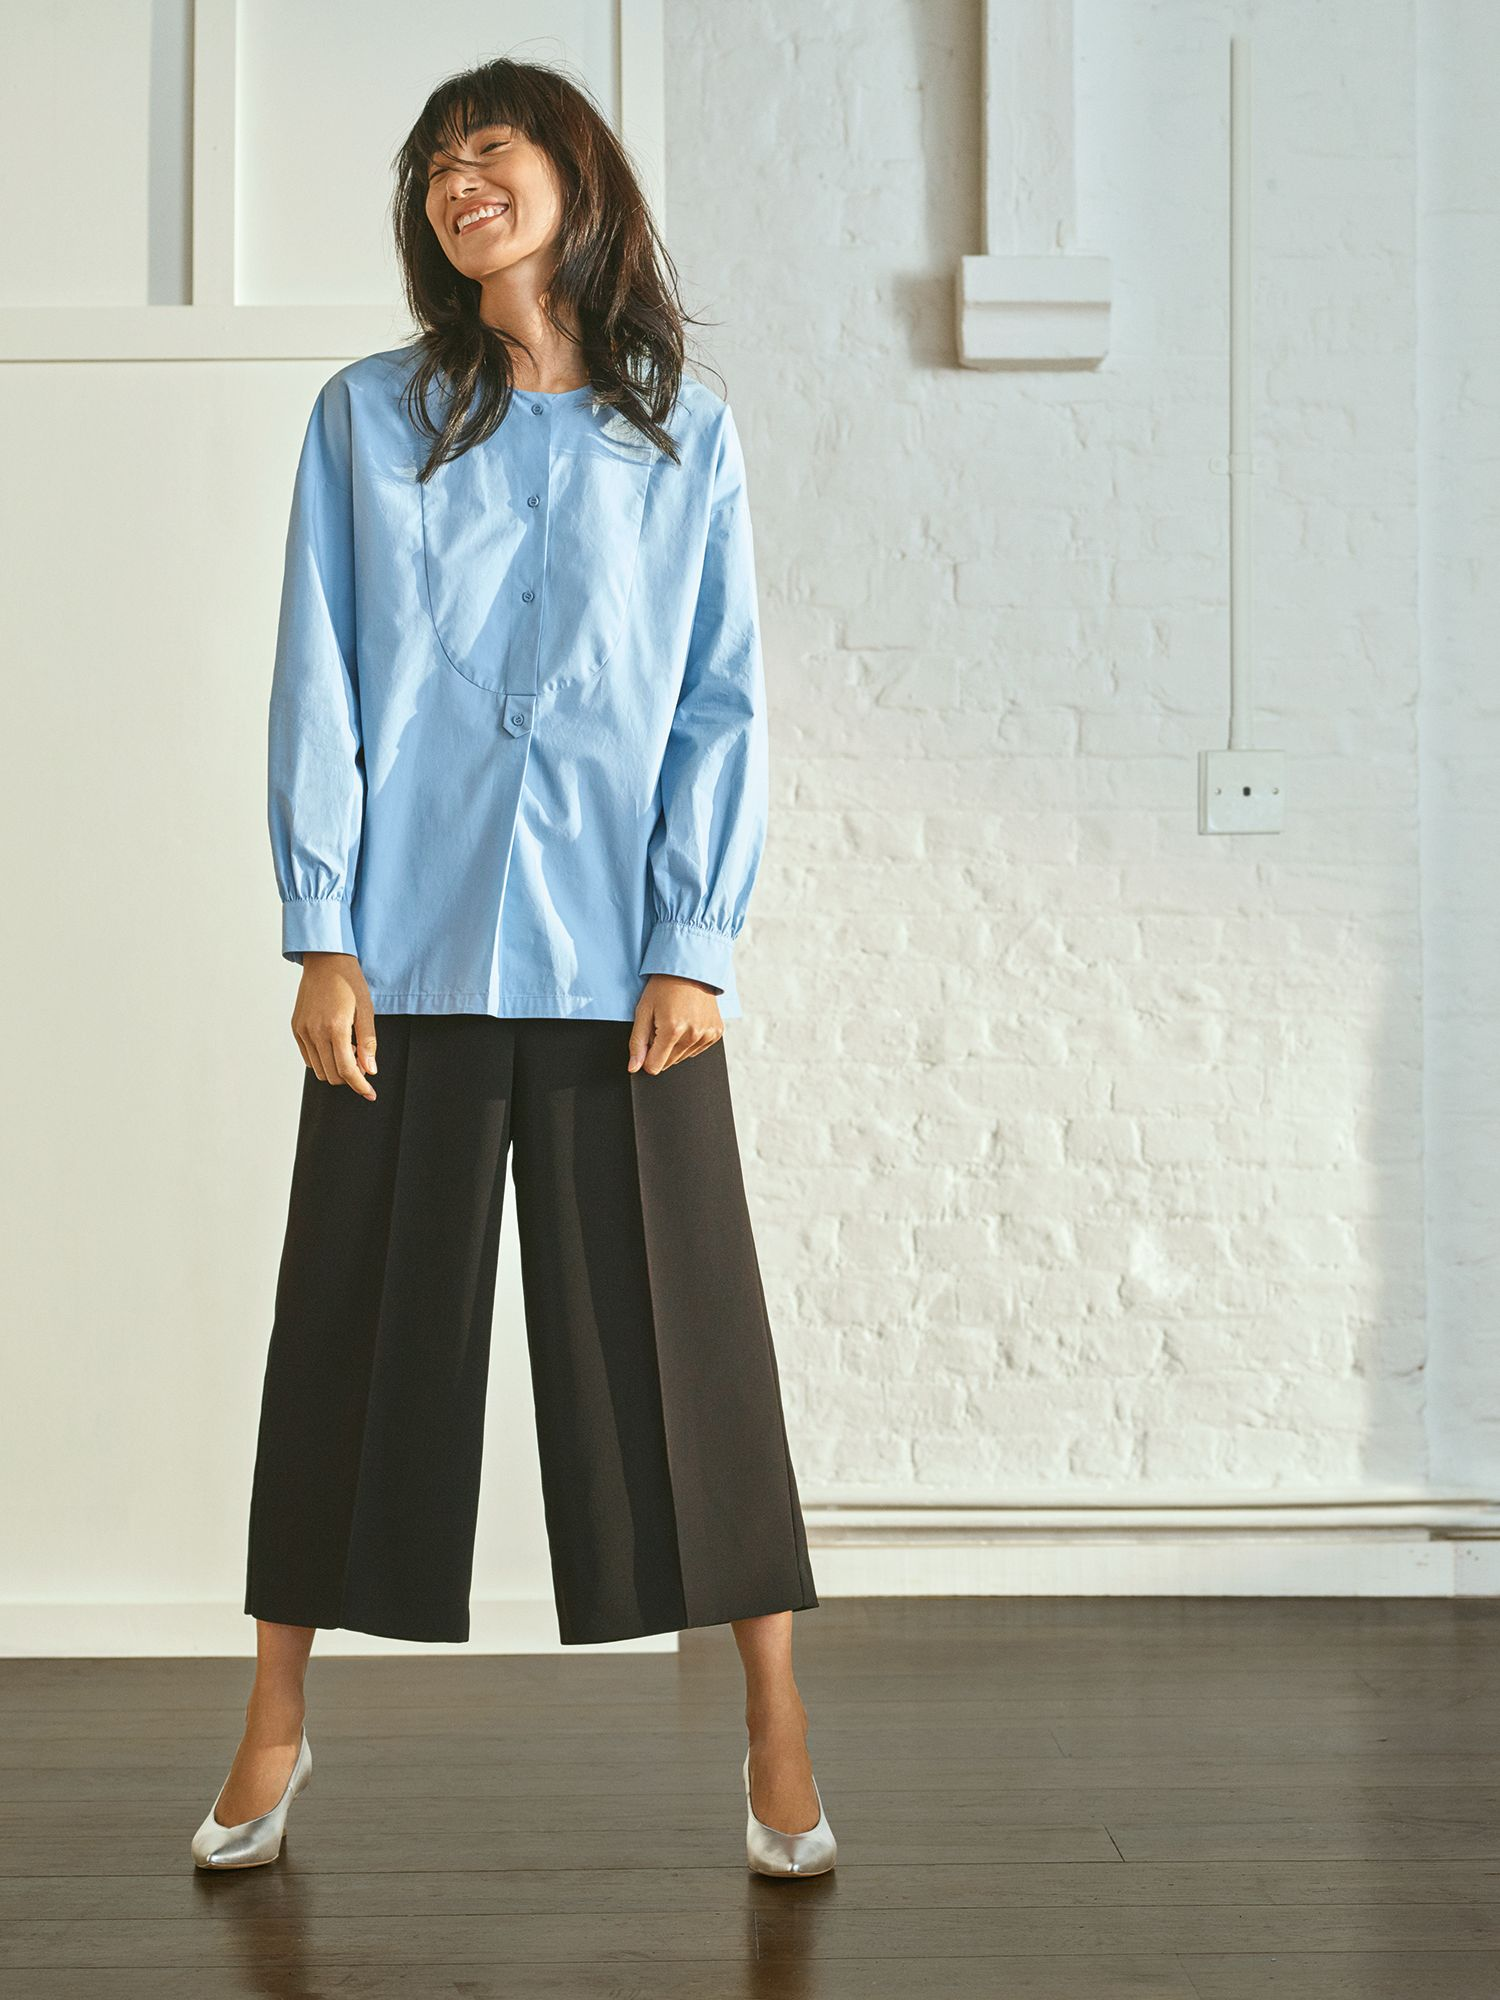 A fashion model wearing tailored cropped trousers by John Lewis